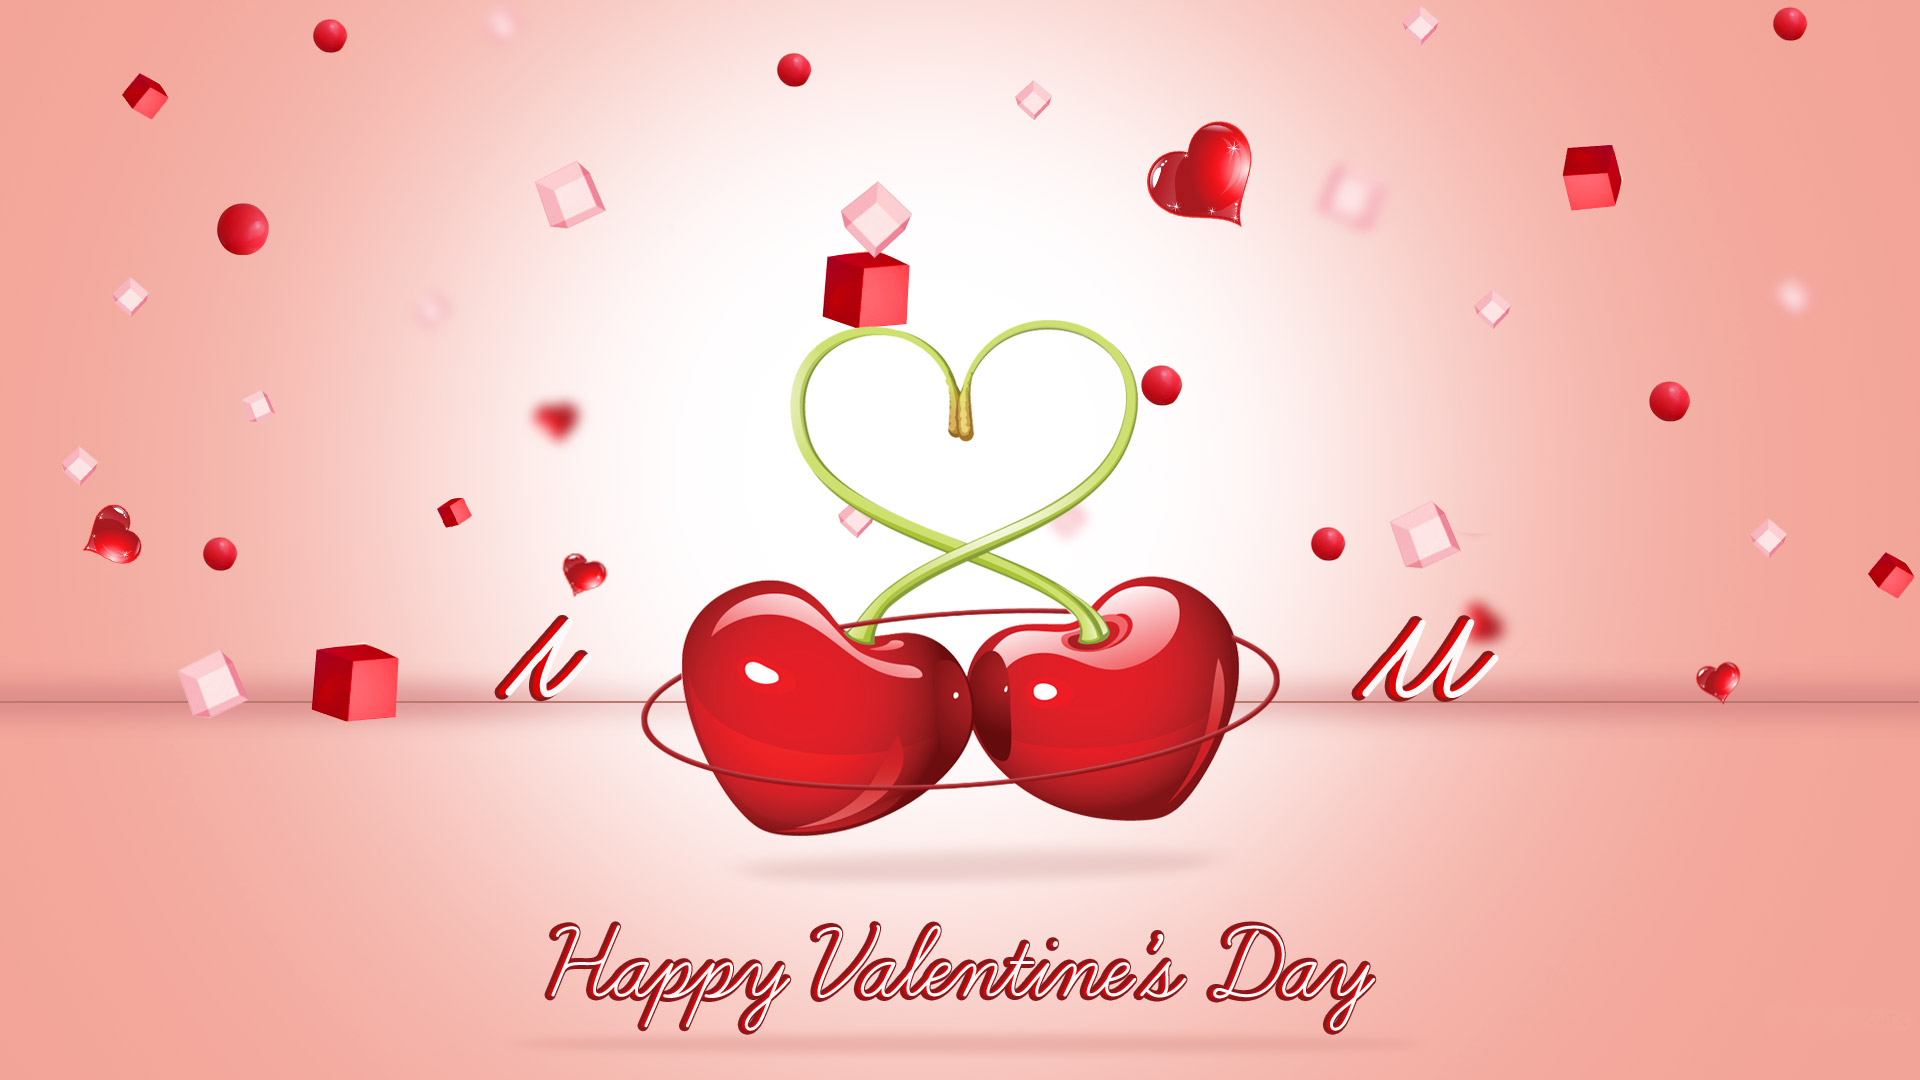 Happy Valentines Day Love 3d Heart Zoo Zoo Hd Wallpaper